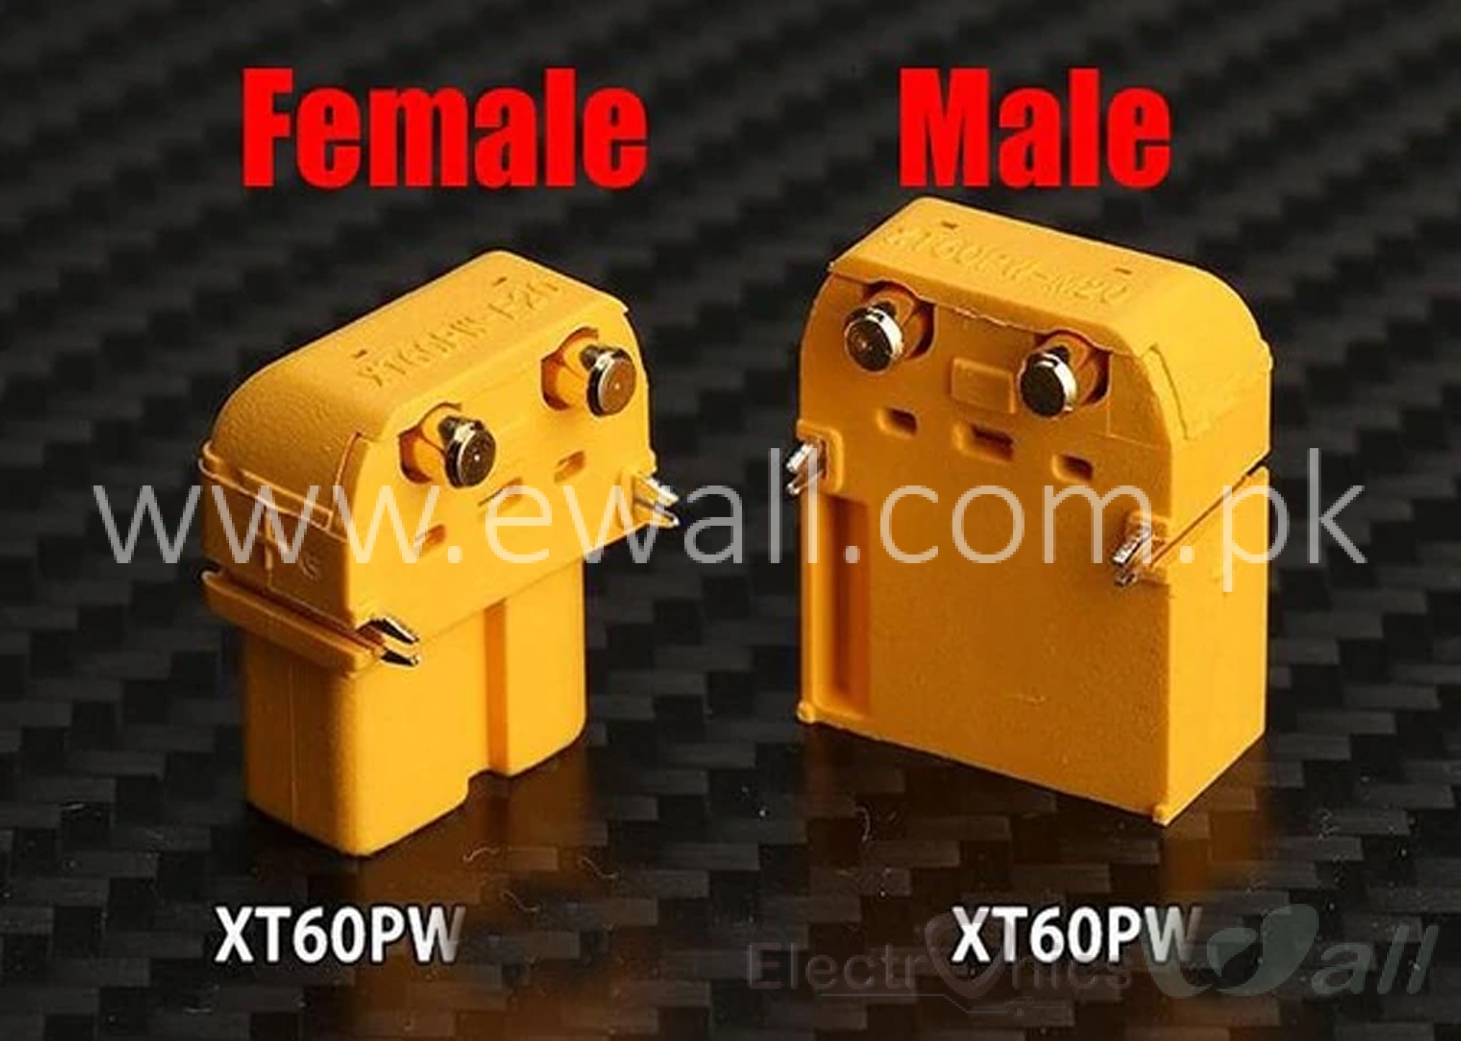 PCB Mounting XT60PW Male and Female (pair) Connector